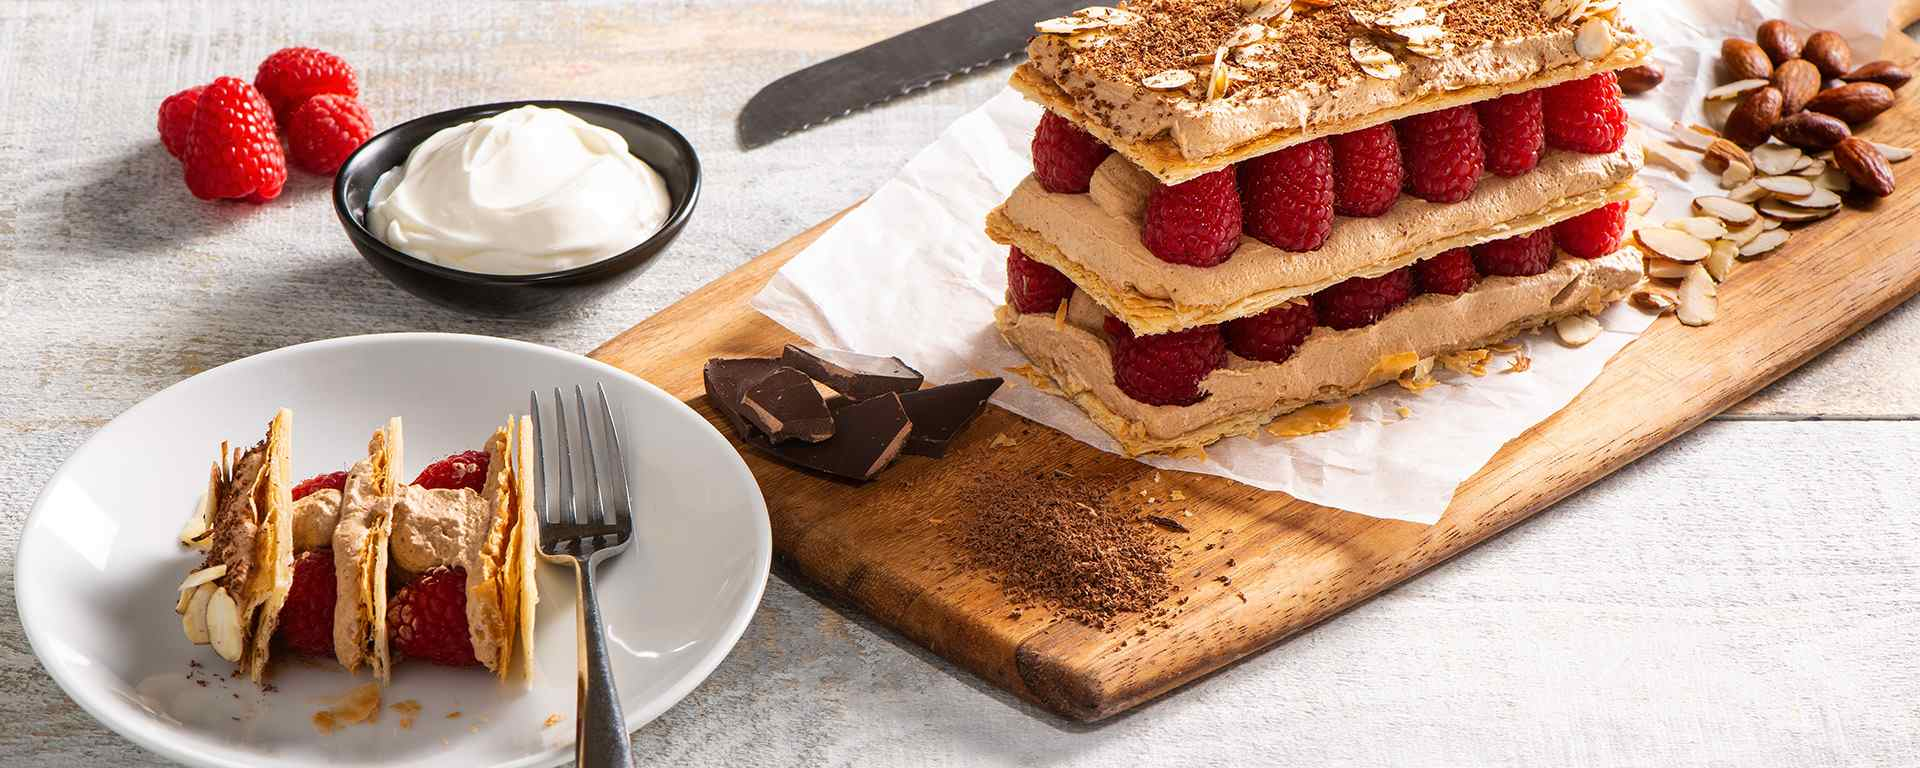 Photo for - Sour Cream Chocolate and Raspberry Mille Feuille